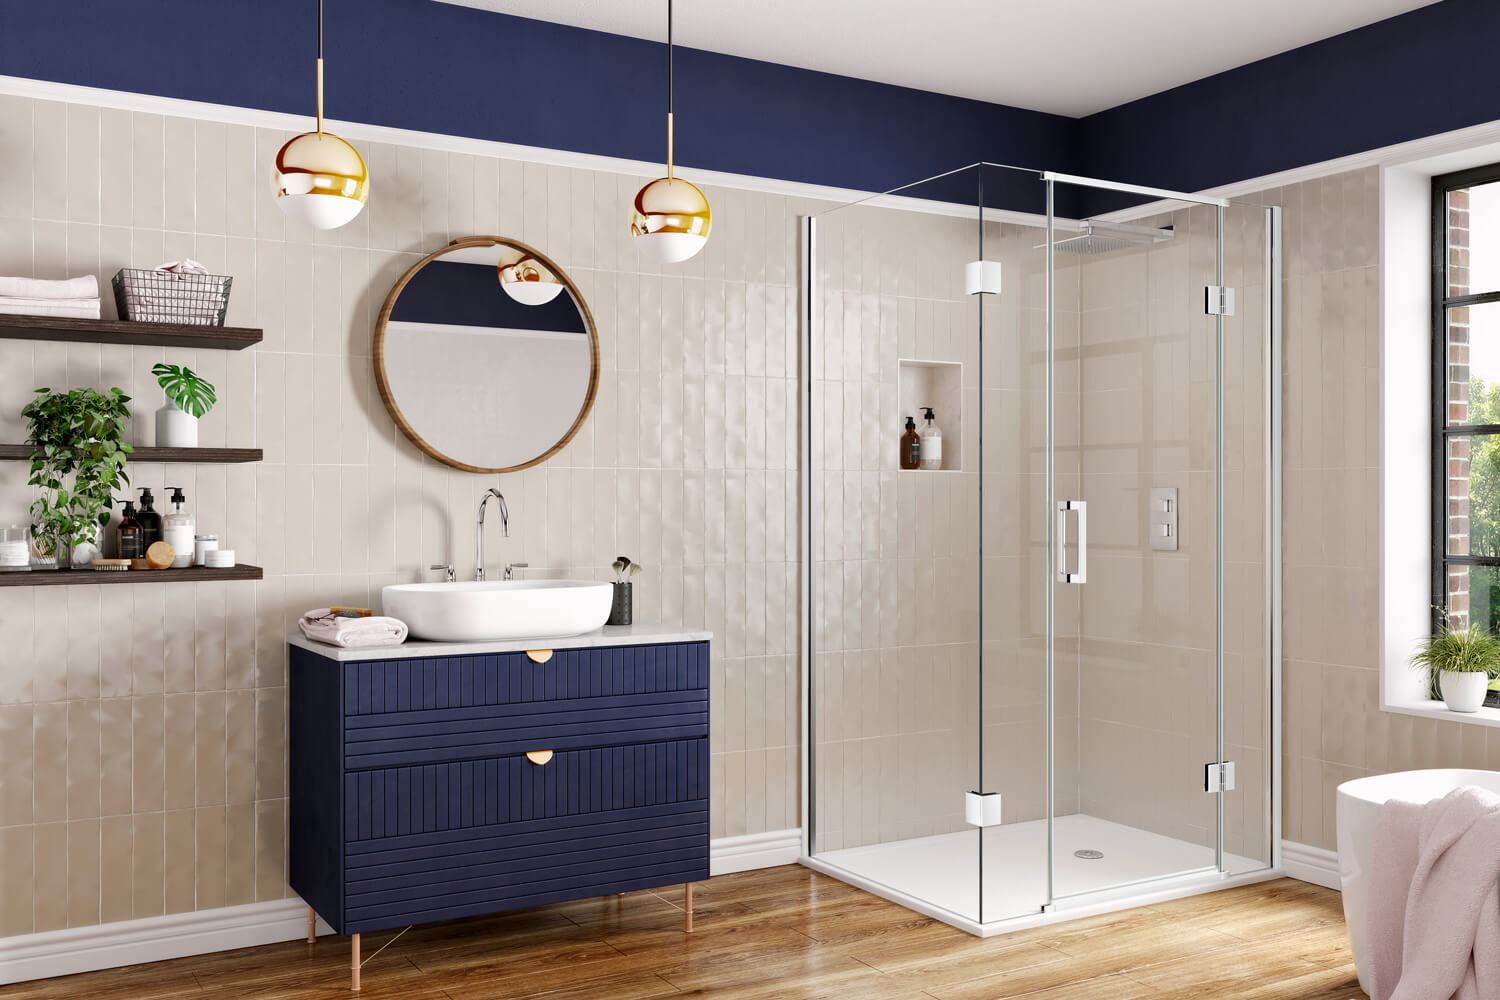 A luxurious tiled bathroom in cream and deep navy blue, with gold accents and wooden floorboards. A feature sink sits in the centre, with an attractive shower in one corner.